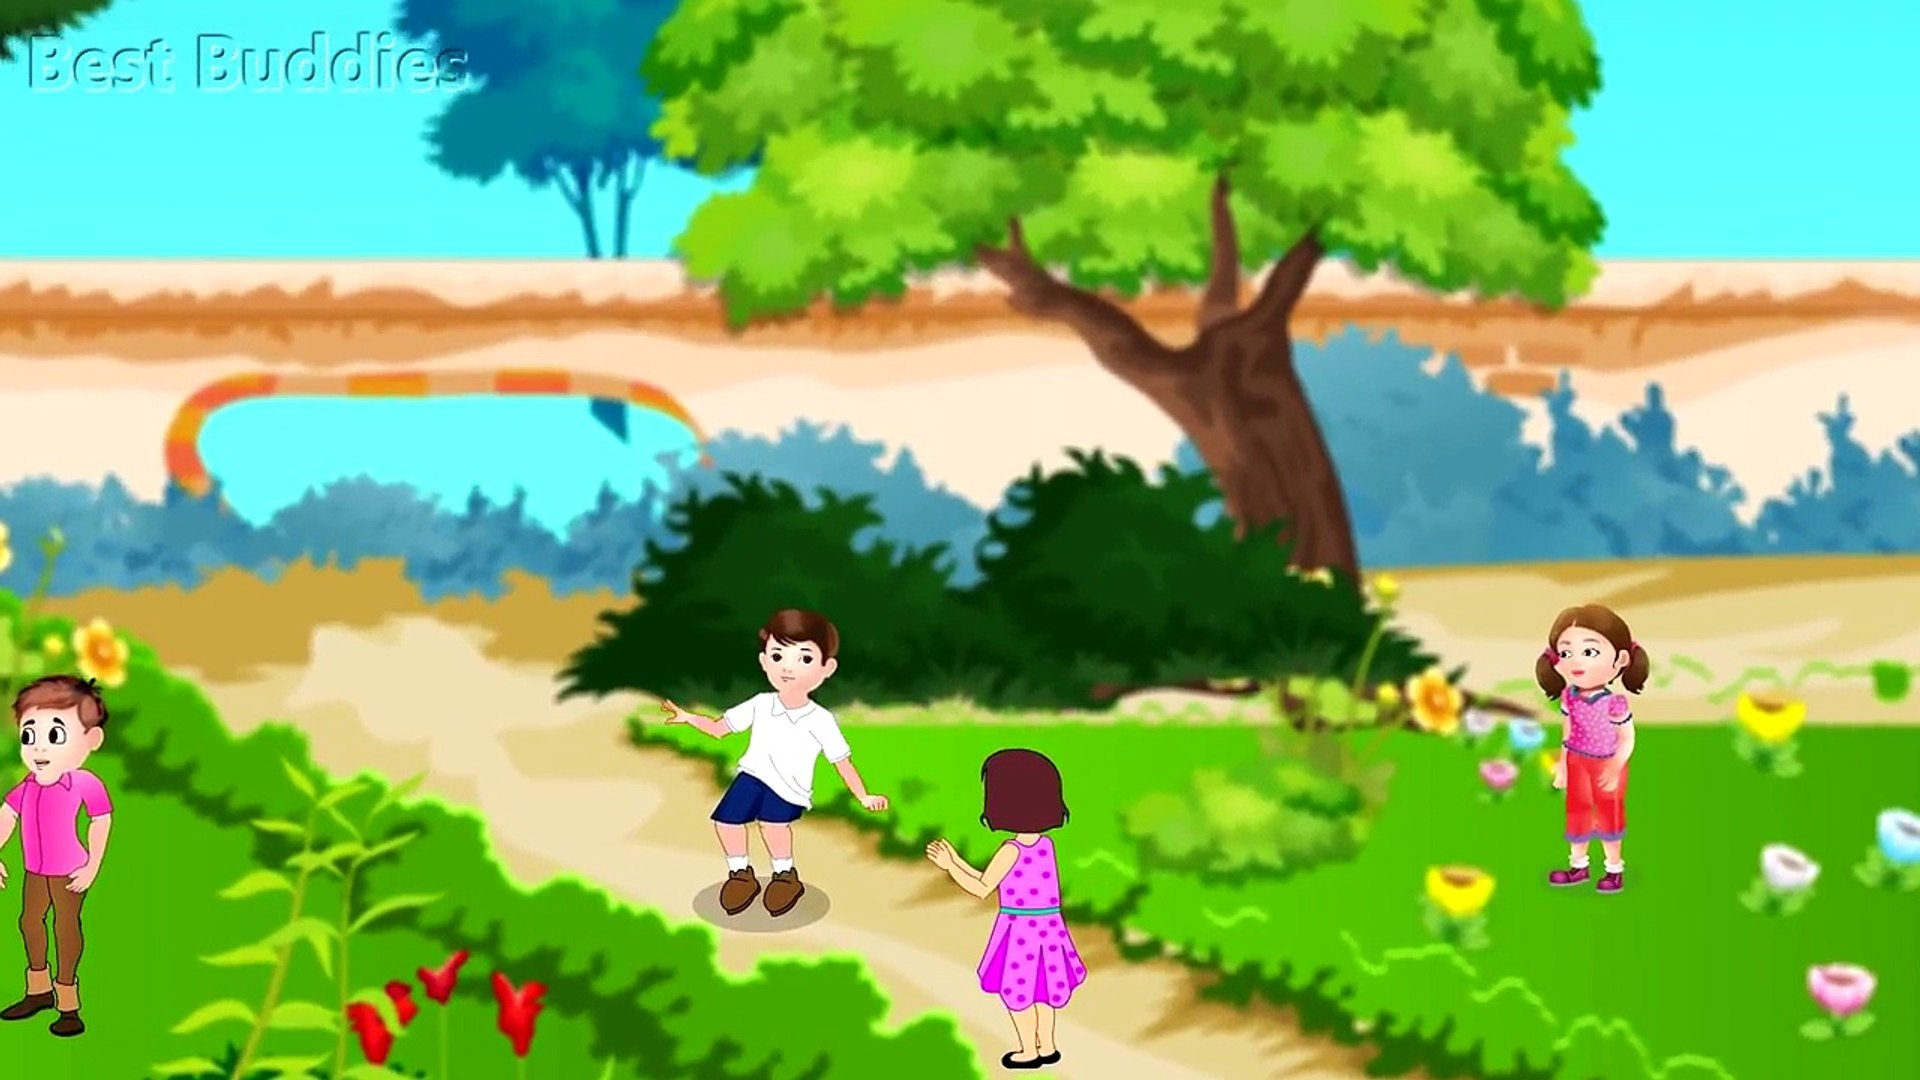 Good Manners | English Nursery Rhyme For Kids and Songs for Babies | Best Buddies